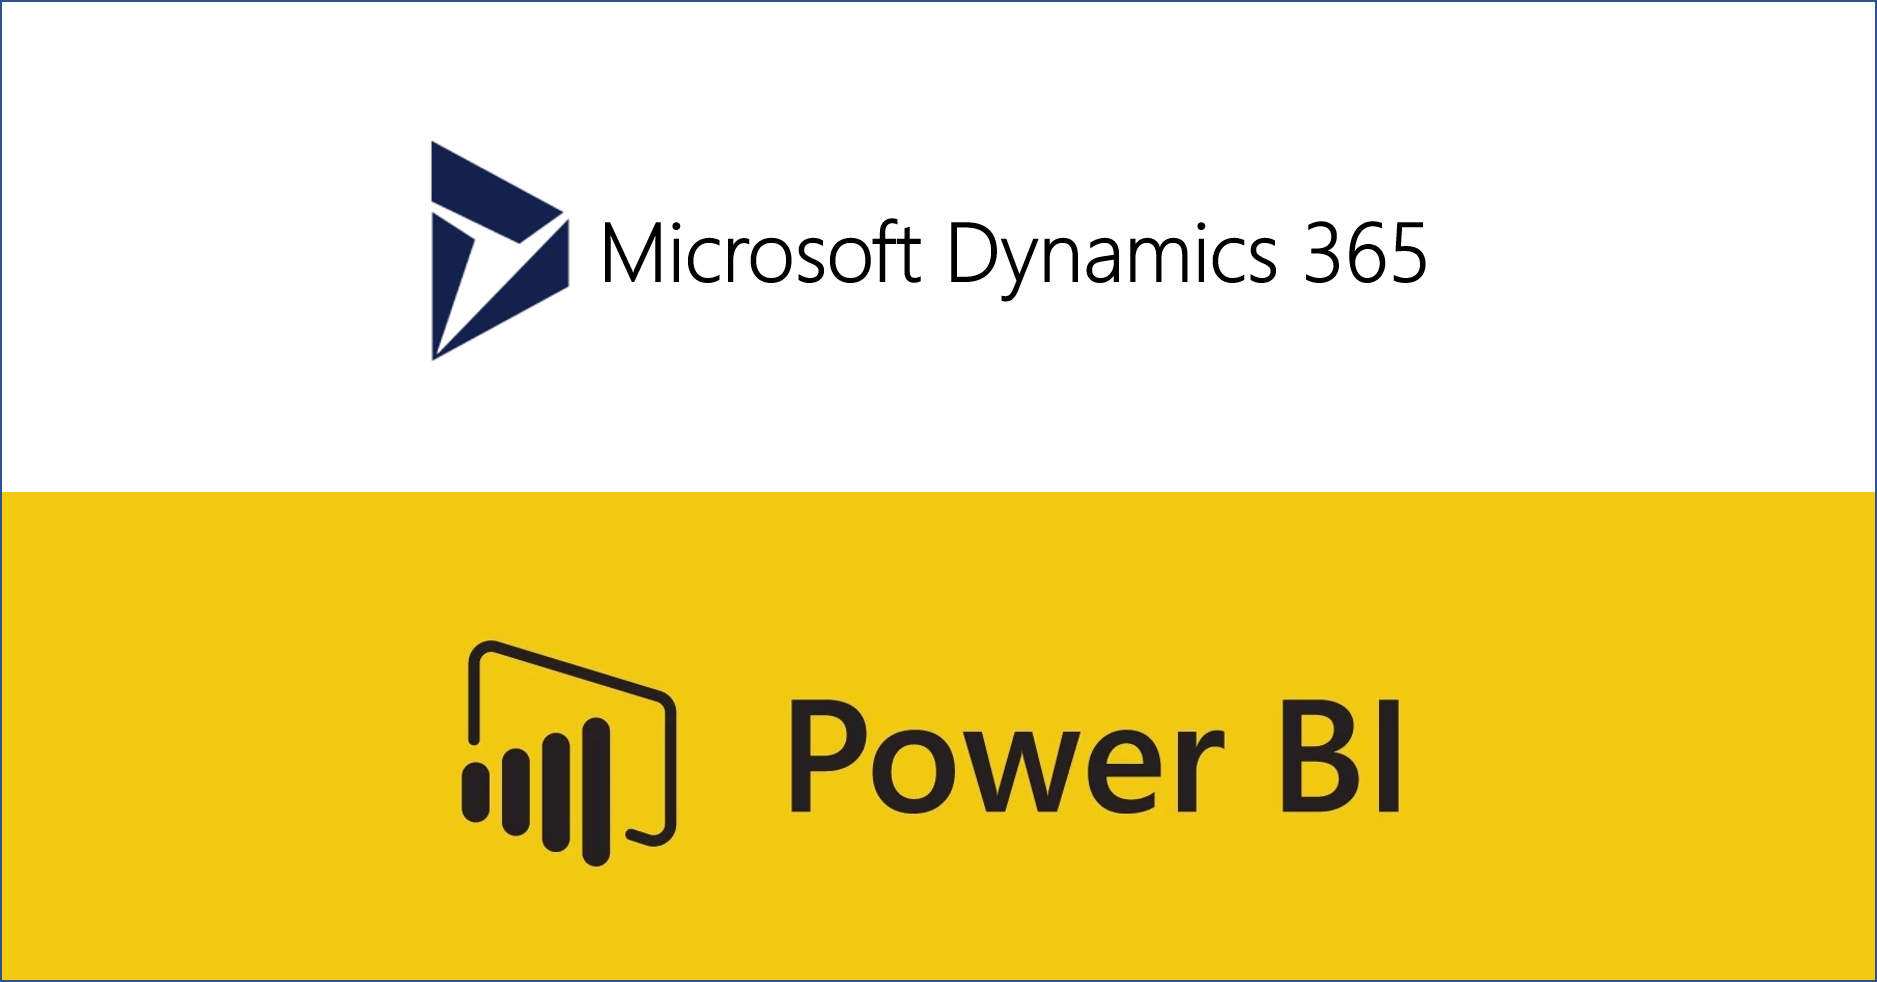 Power bi logo png. How to add a